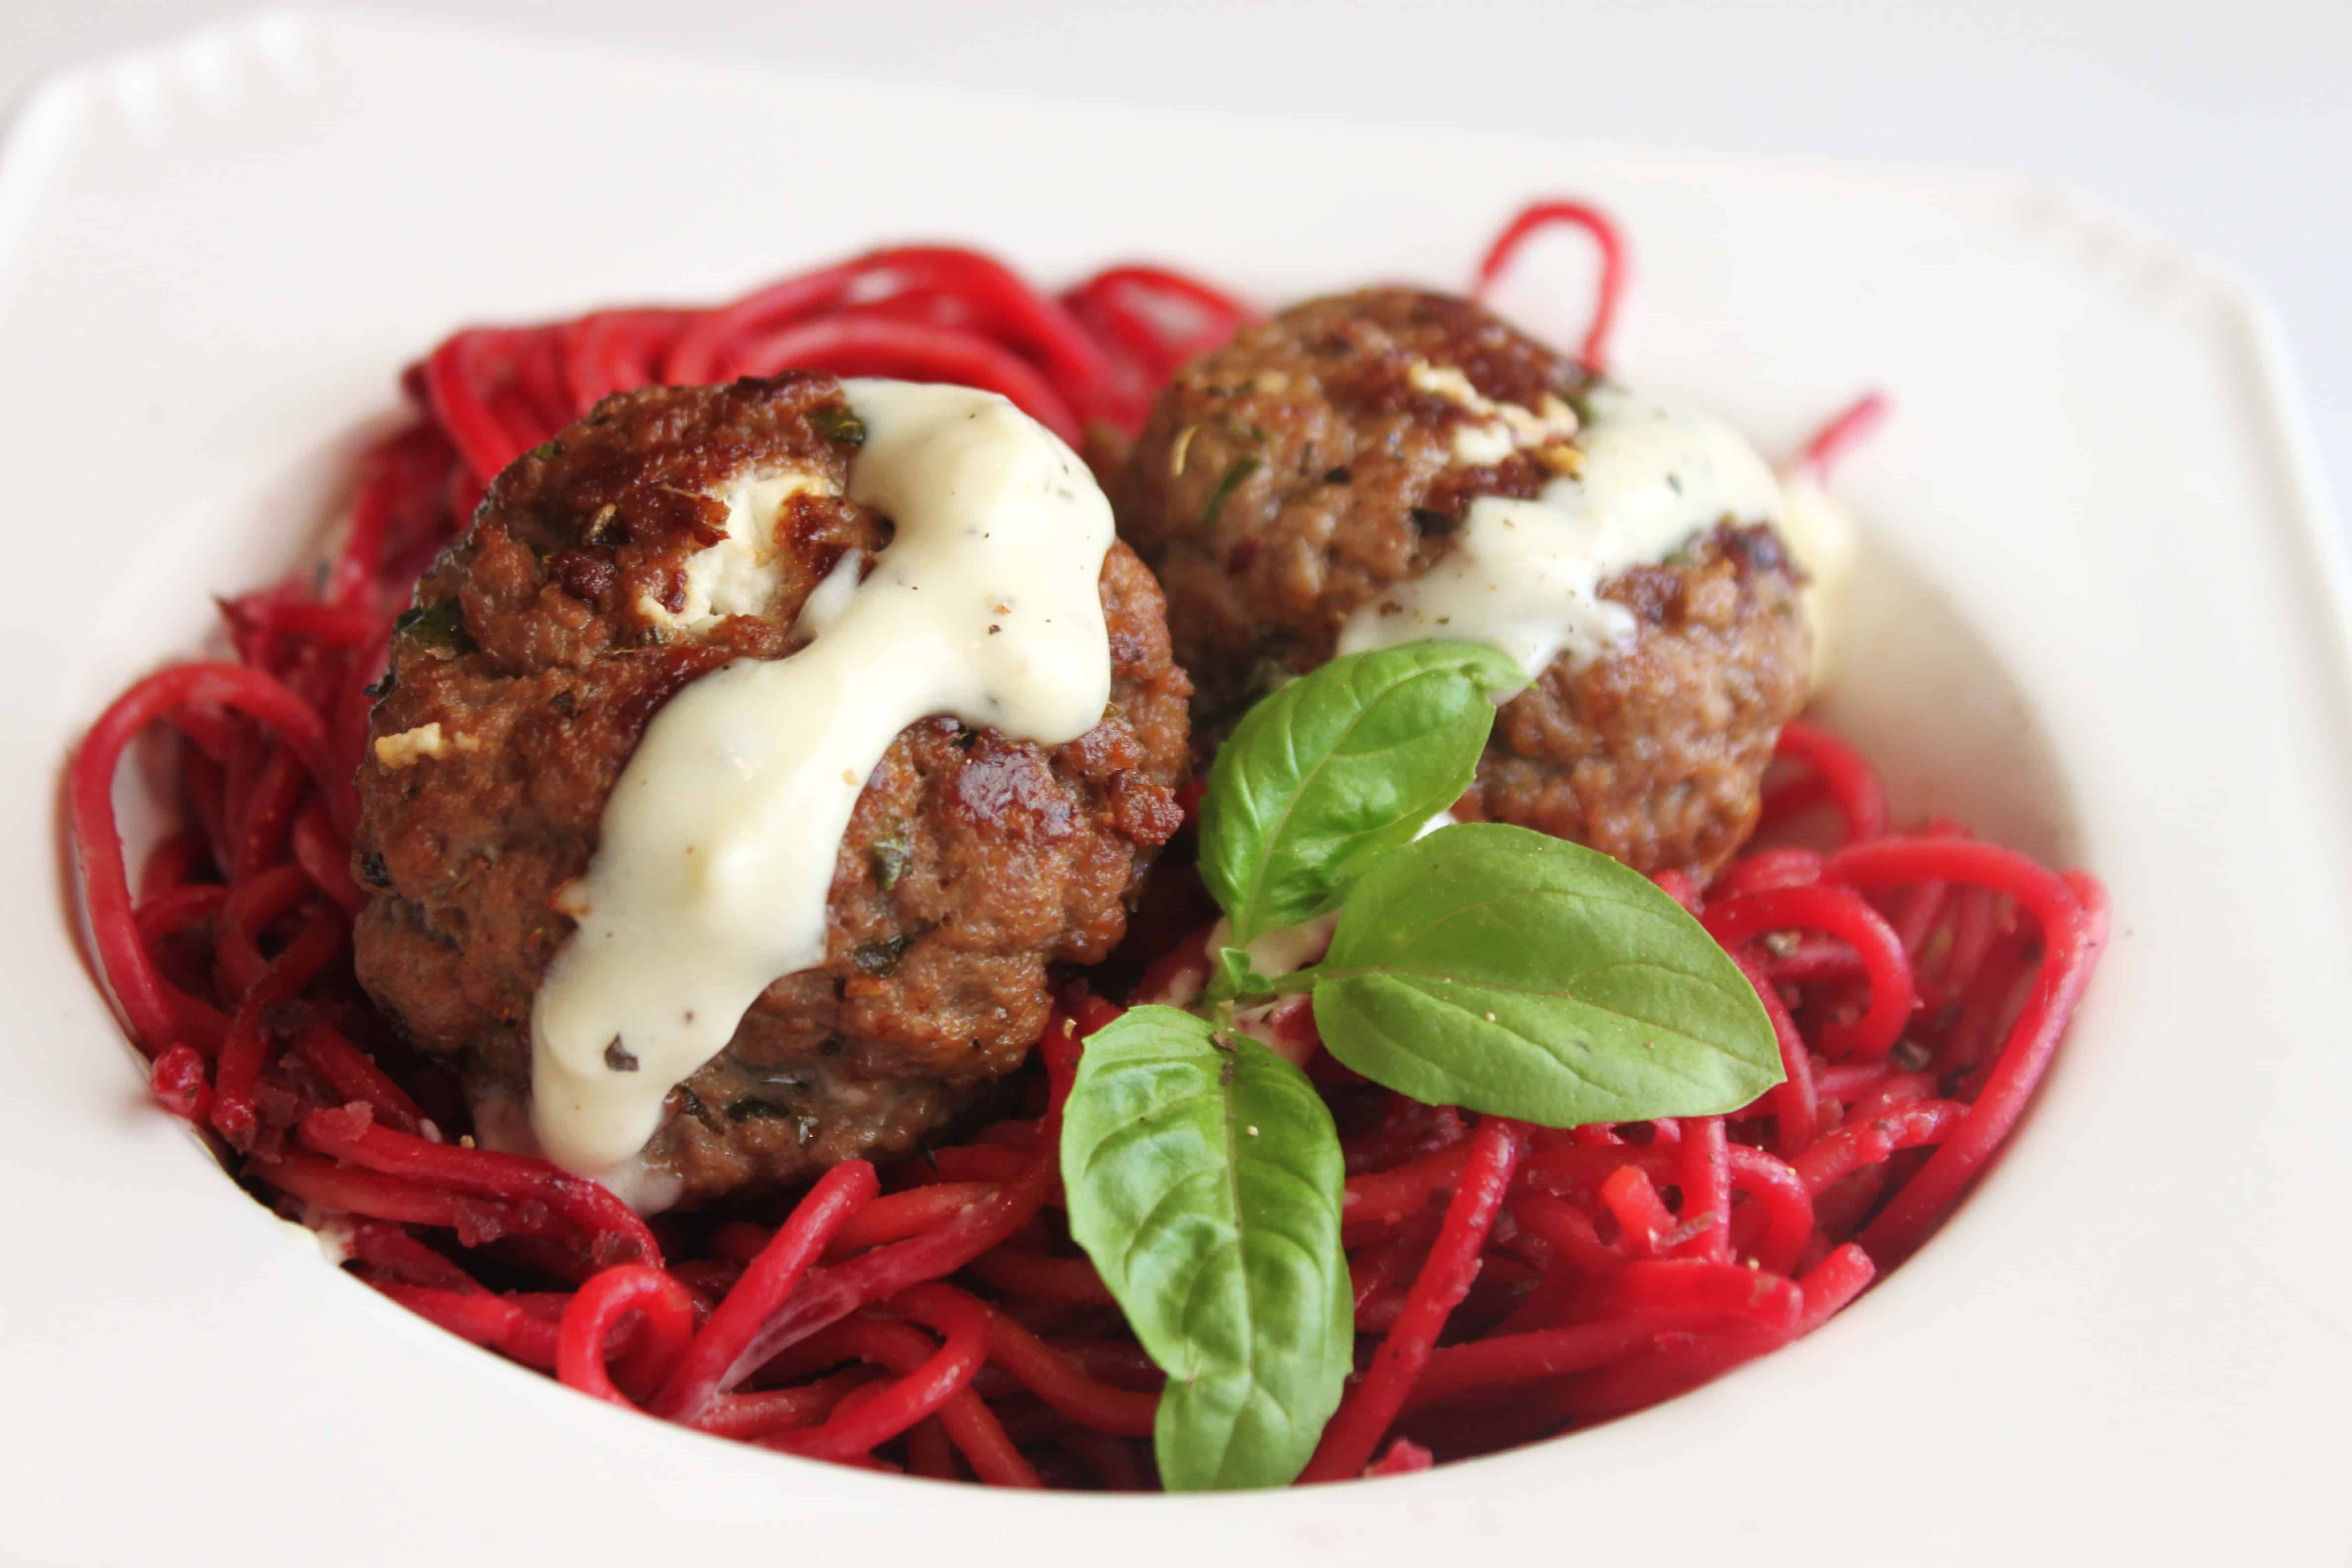 Goat Cheese Meatballs, Beets and Spaghetti